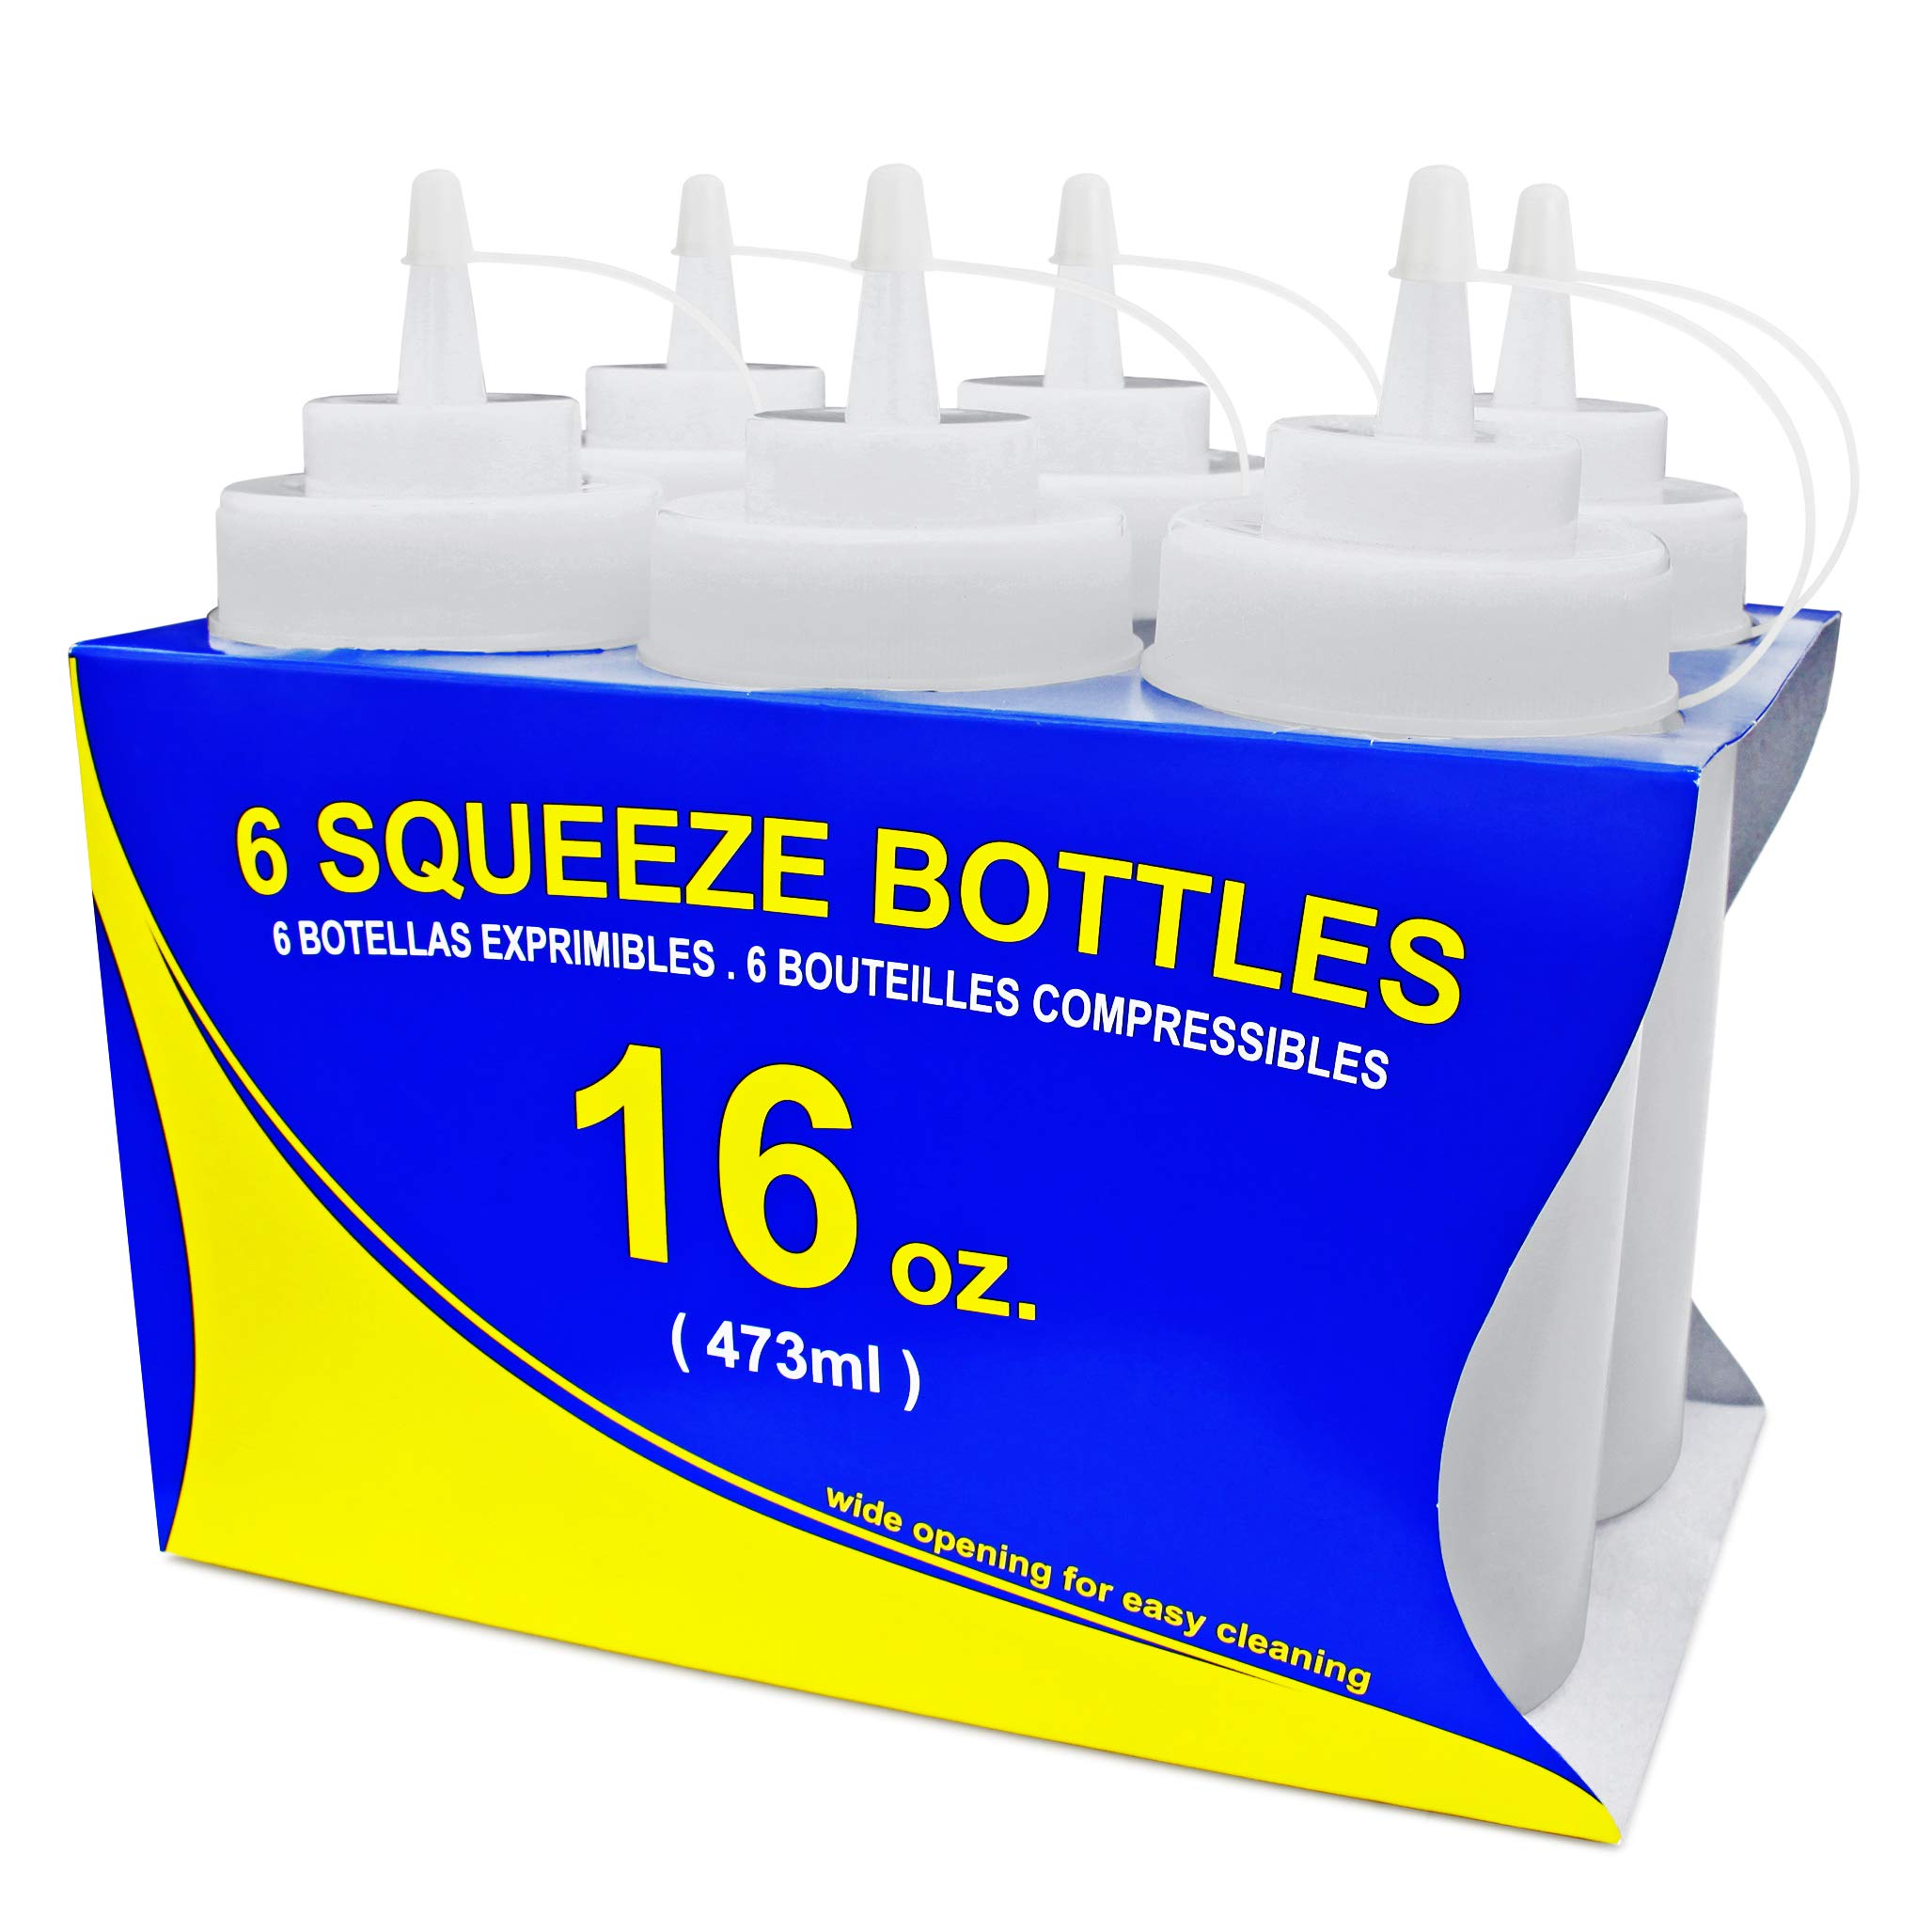 New Star Foodservice 26177 Squeeze Bottles, Plastic, Wide Mouth, 16 oz, Clear, Pack of 6 by New Star Foodservice